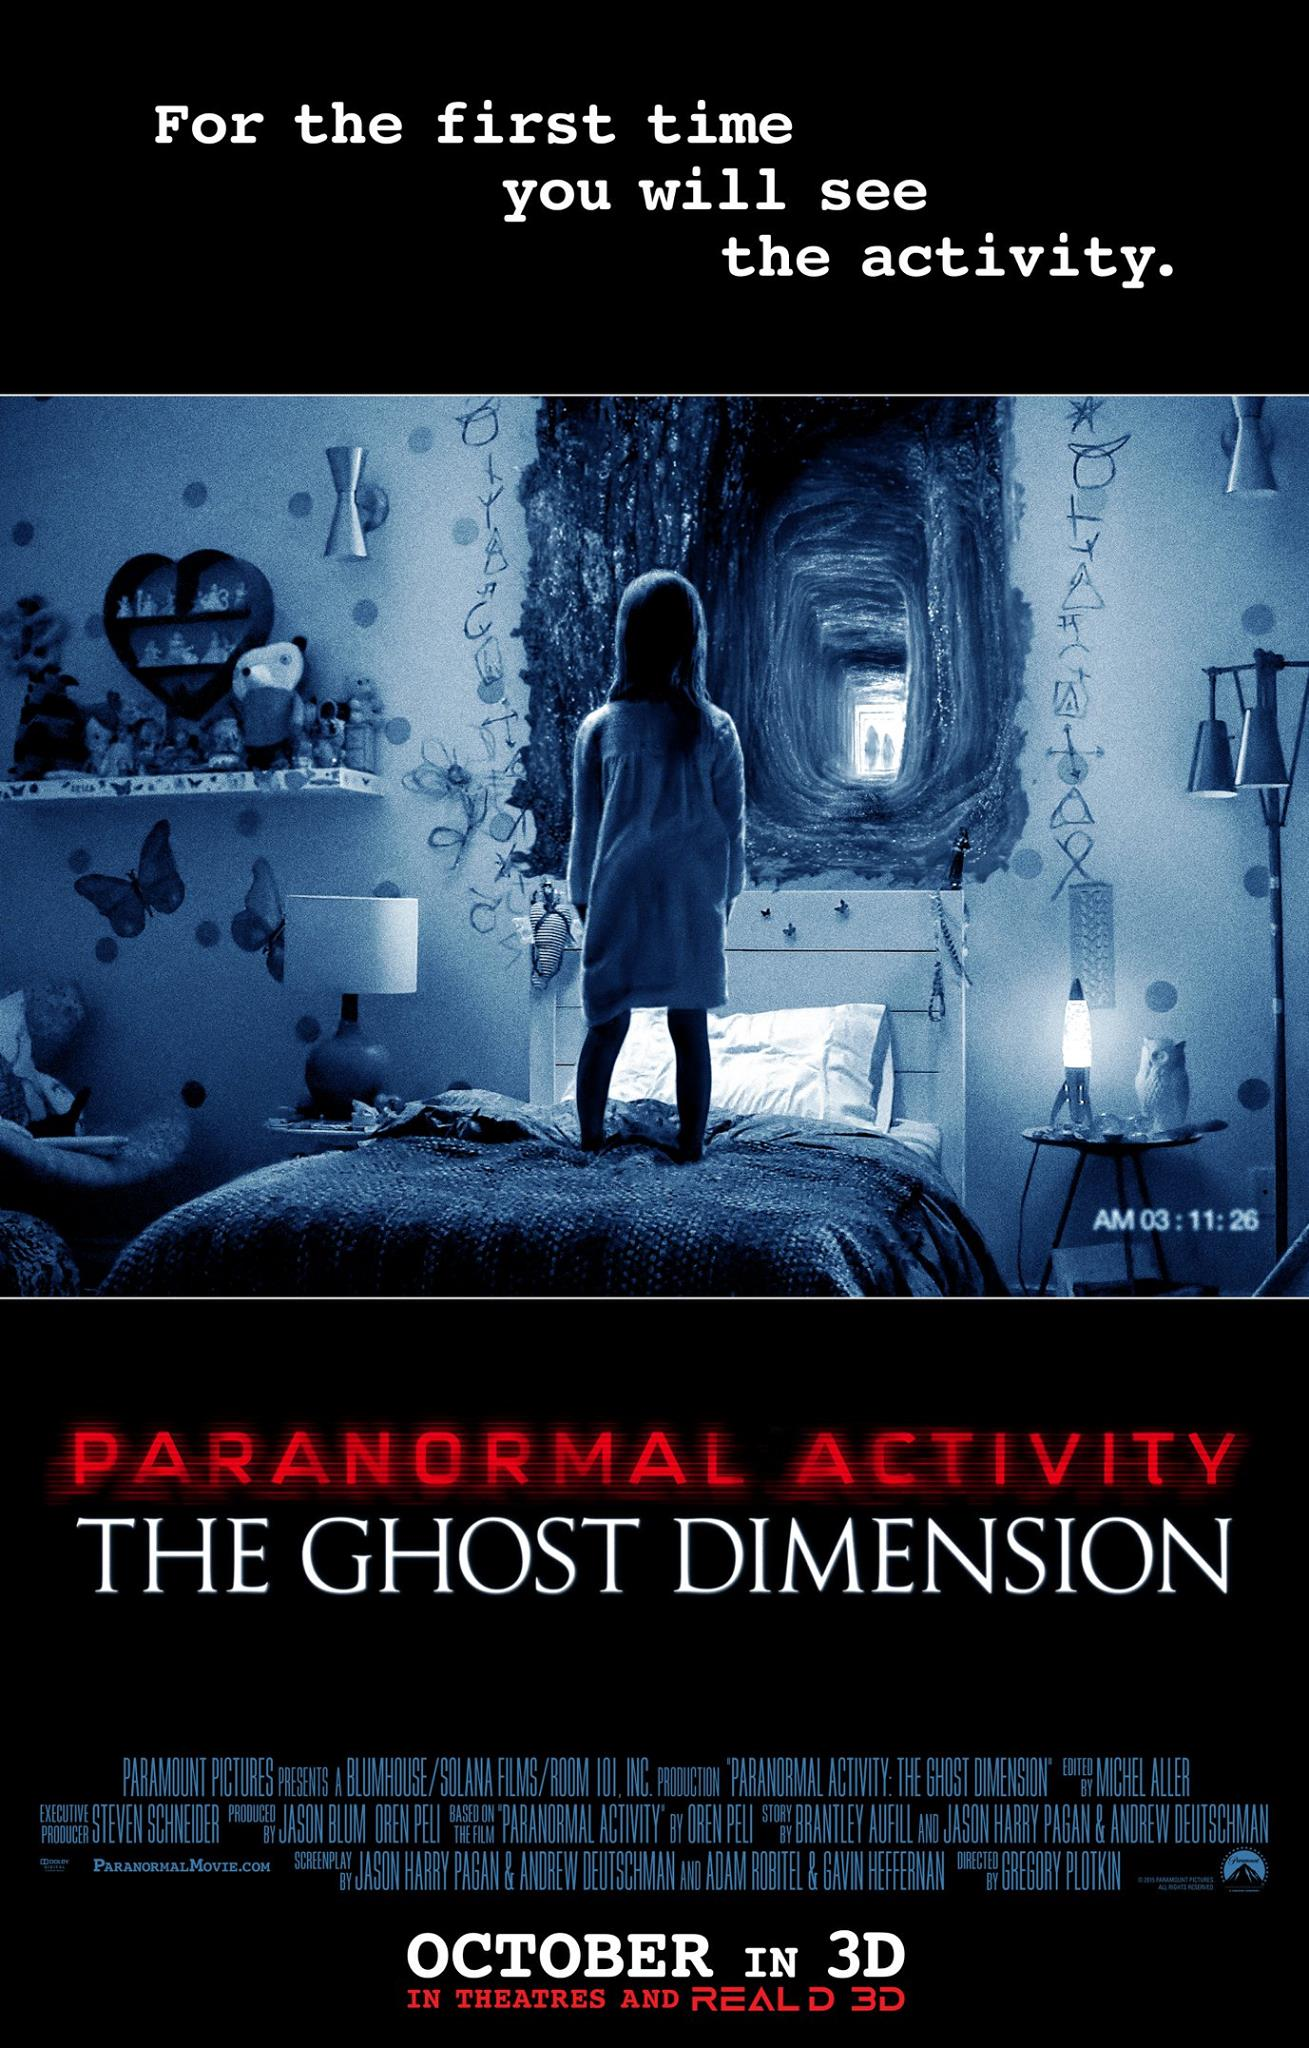 http://img5.downloadha.com/hosein/Movie/December%202015/Paranormal-Activity-The-Ghost-Dimension-2015-cover-large.jpg